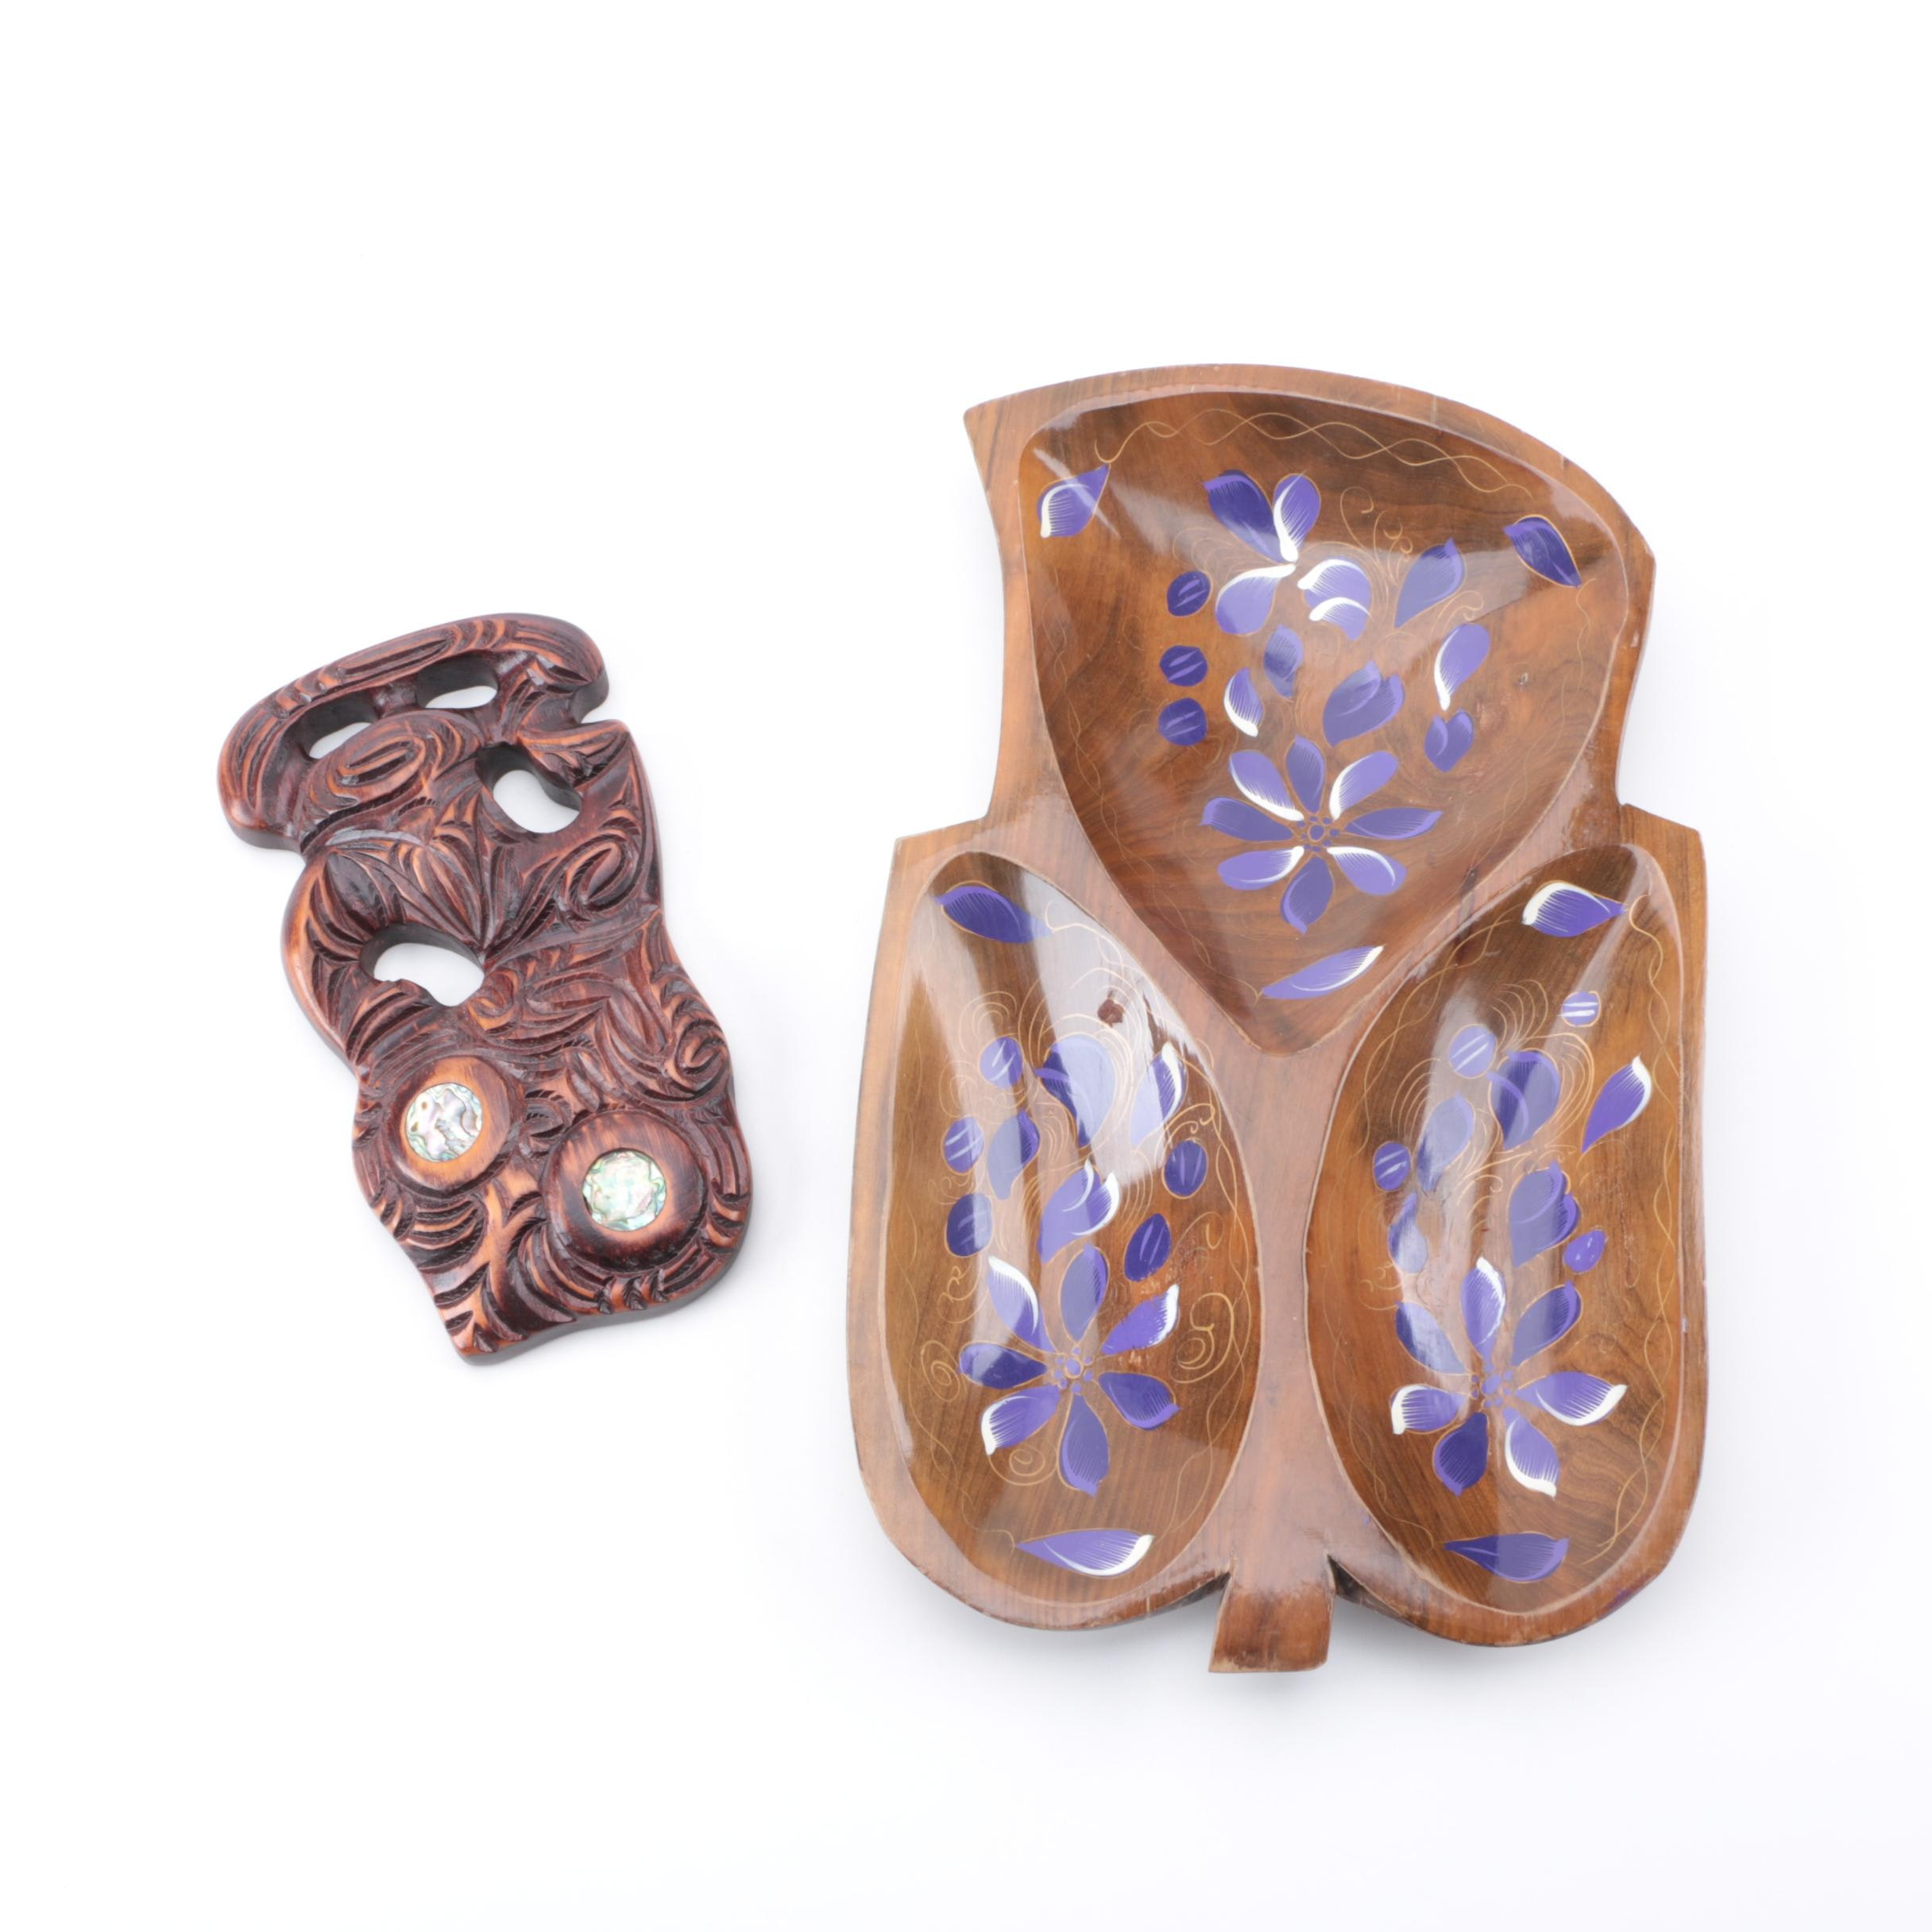 Carved Wood Tray and Decorative Abstract Plaque